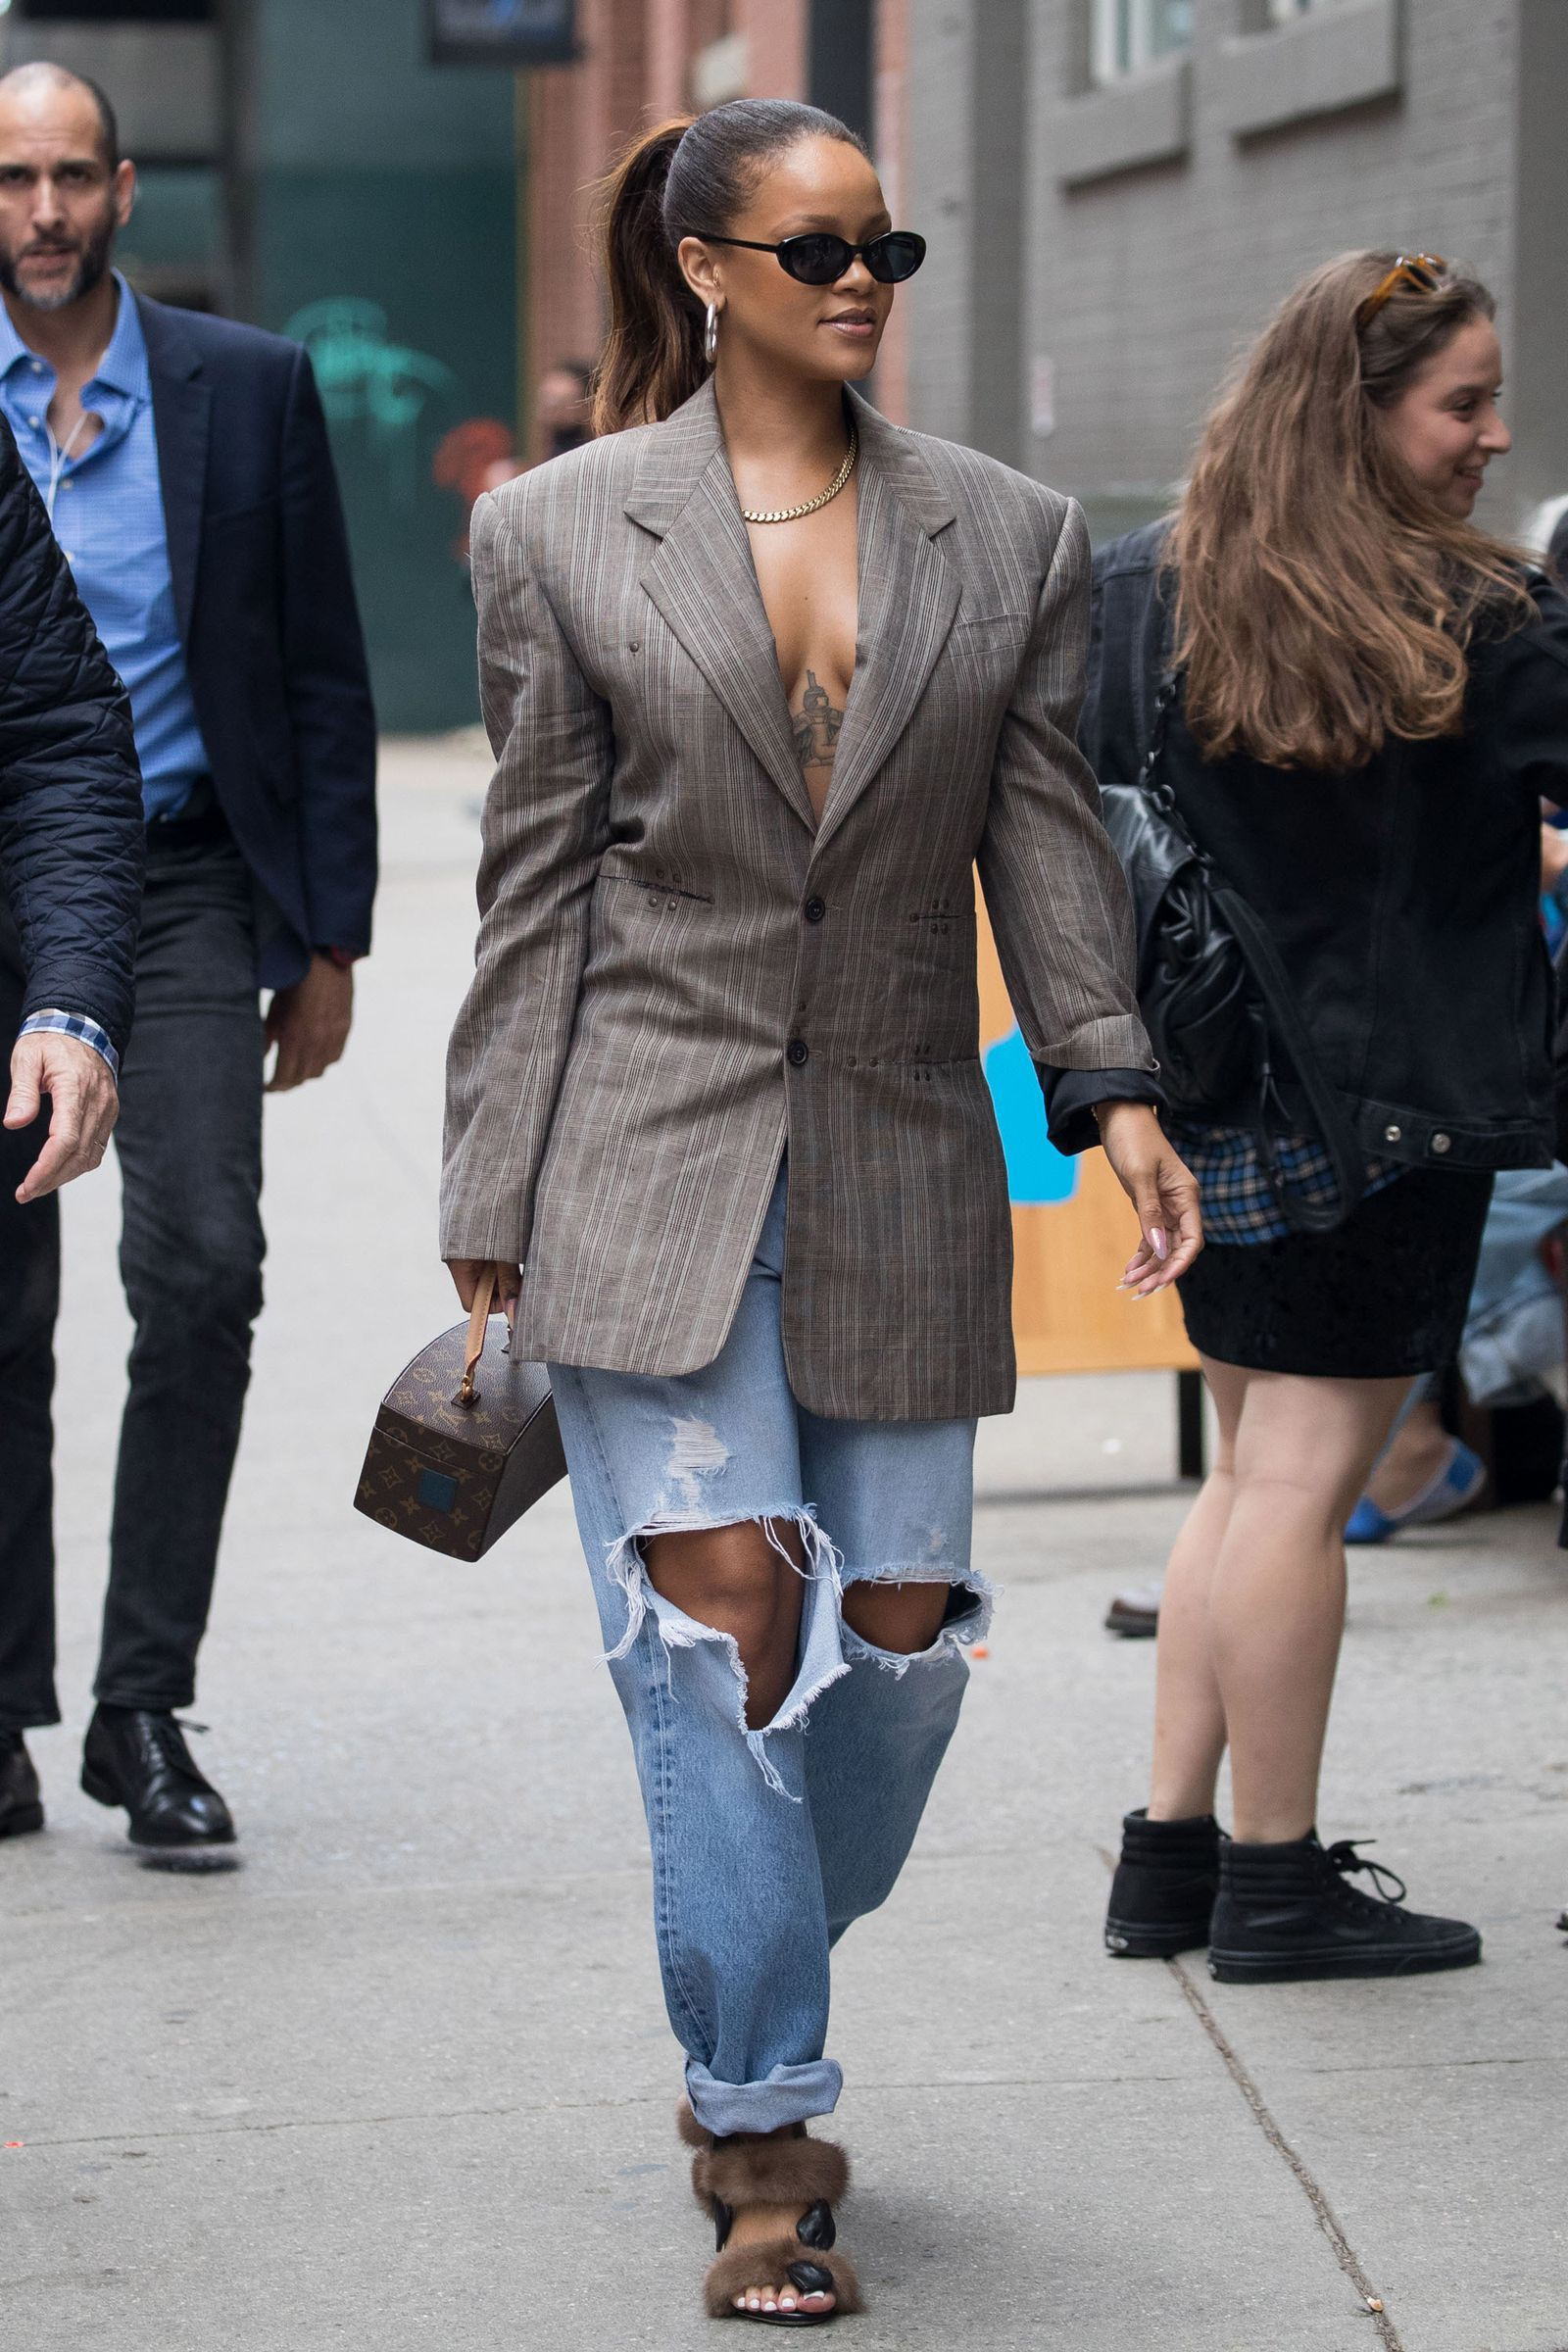 These trendy ideas for rihanna 2018 street style, Fashion week